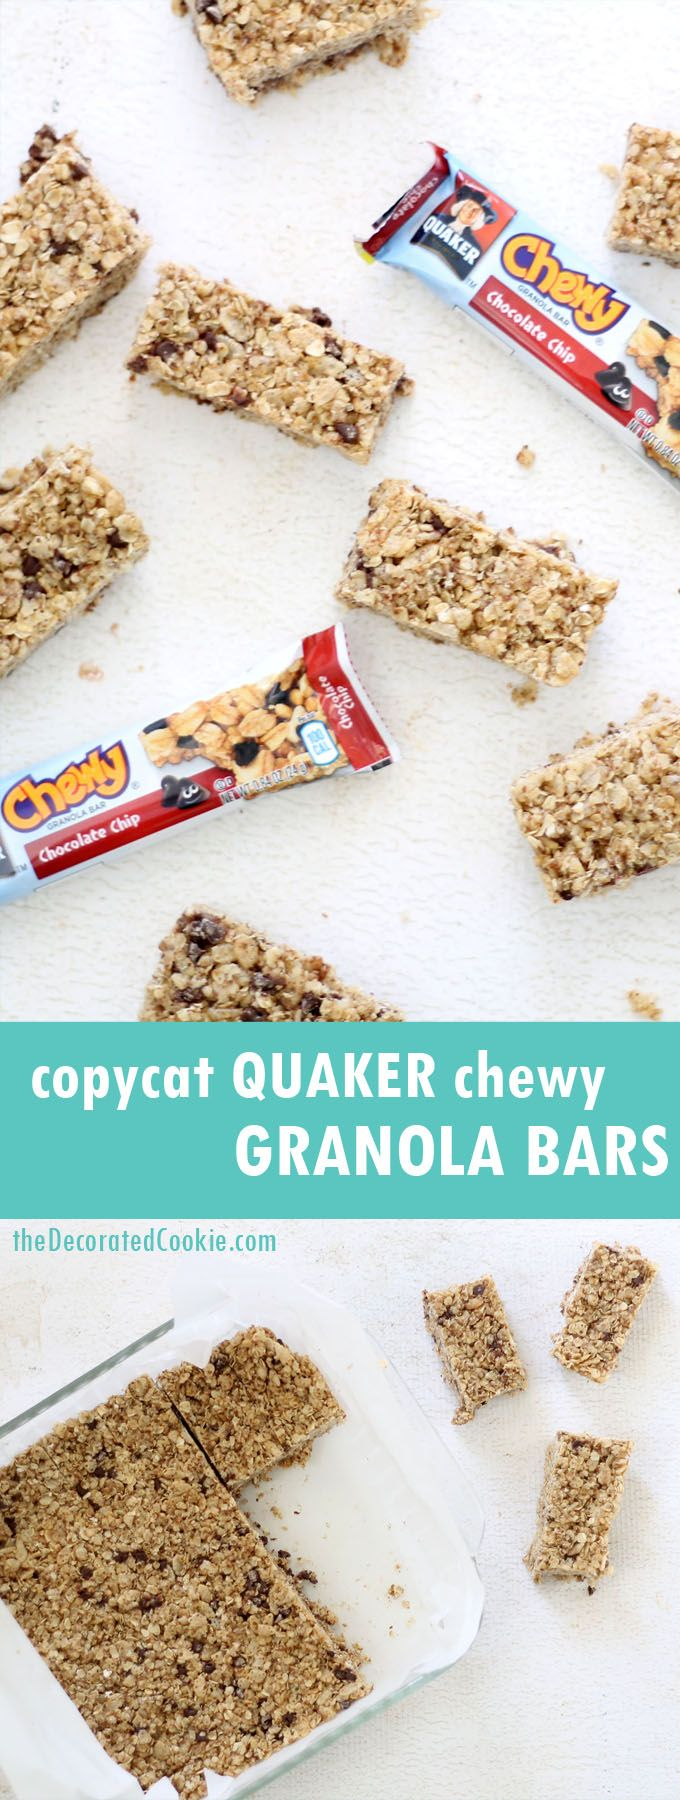 copycat Quaker chewy chocolate chip granola bars